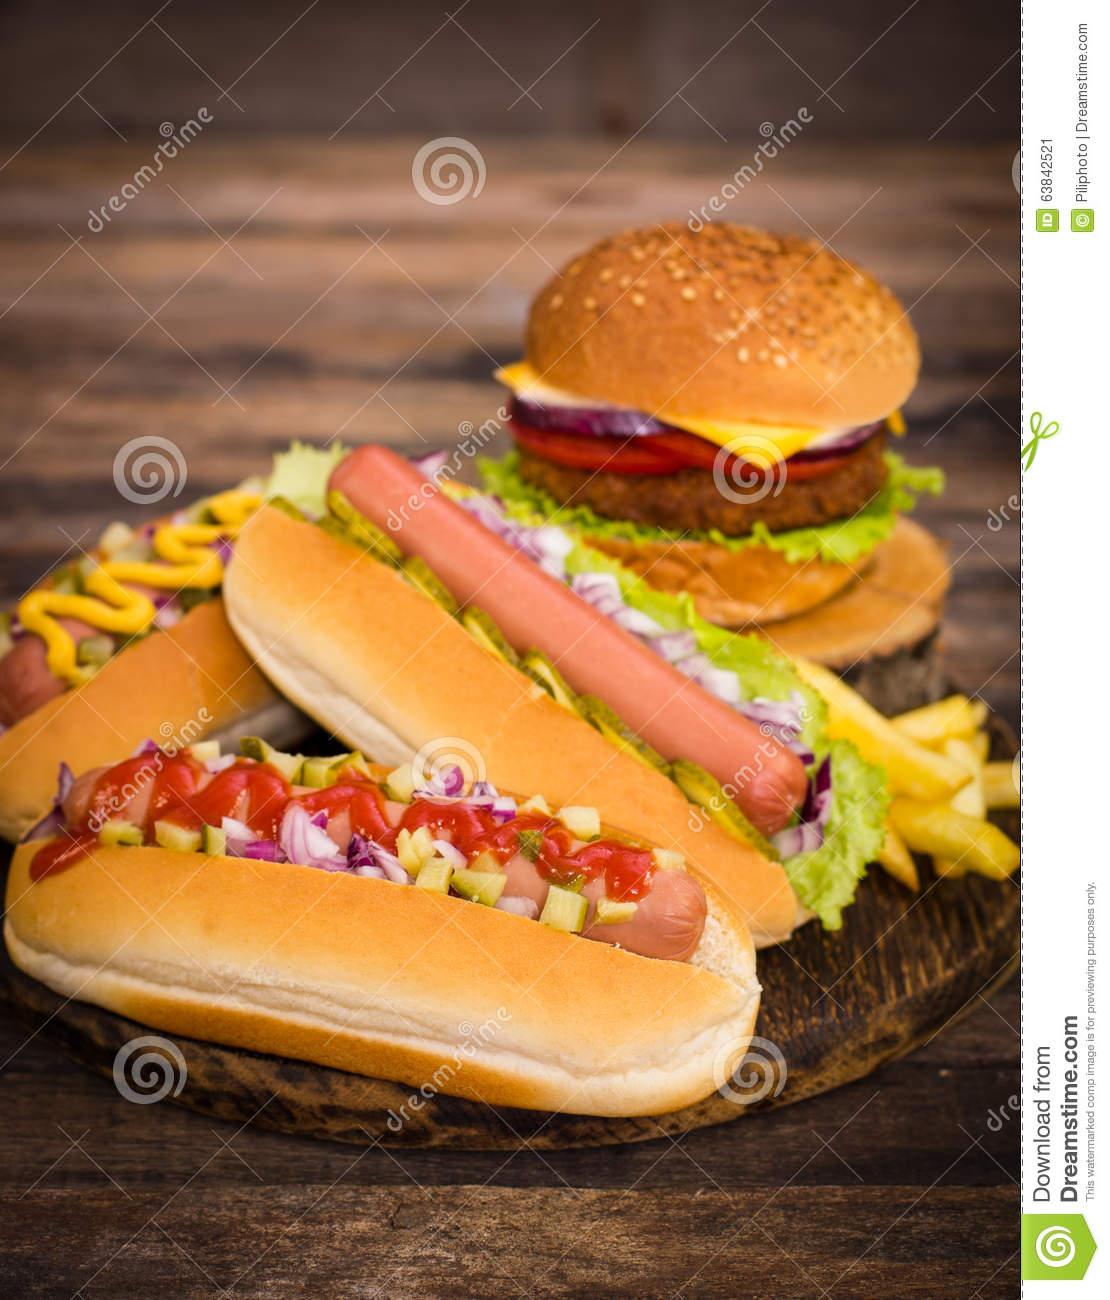 fast food hot dogs hamburger and french fries stock image image 63842521. Black Bedroom Furniture Sets. Home Design Ideas